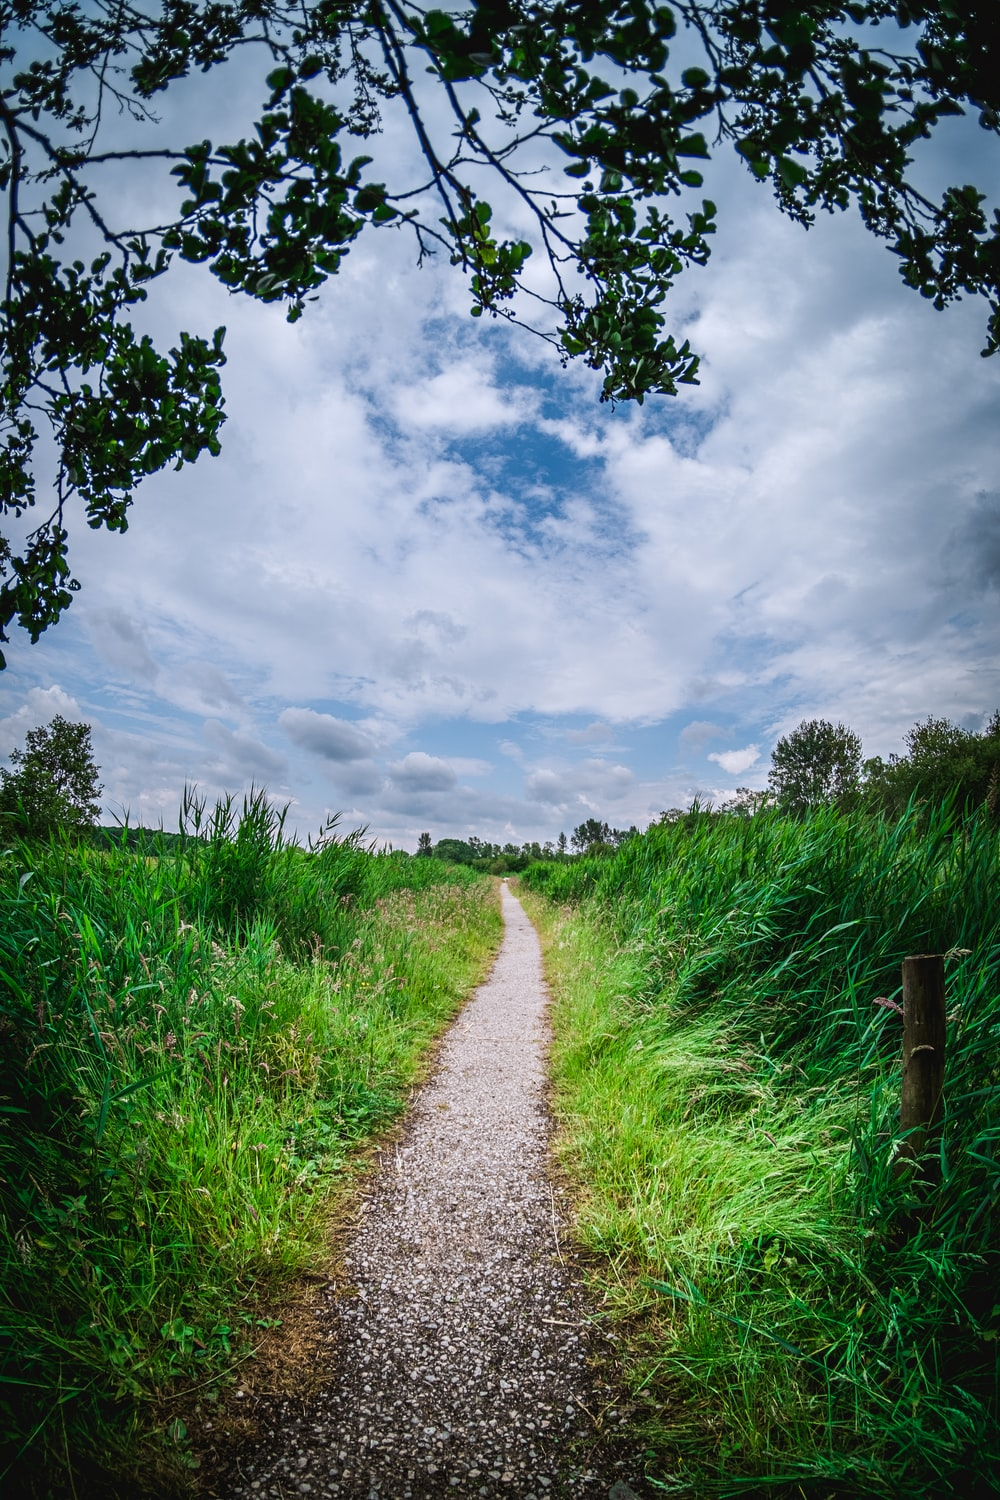 pathway between green grass under cloudy sky during daytime